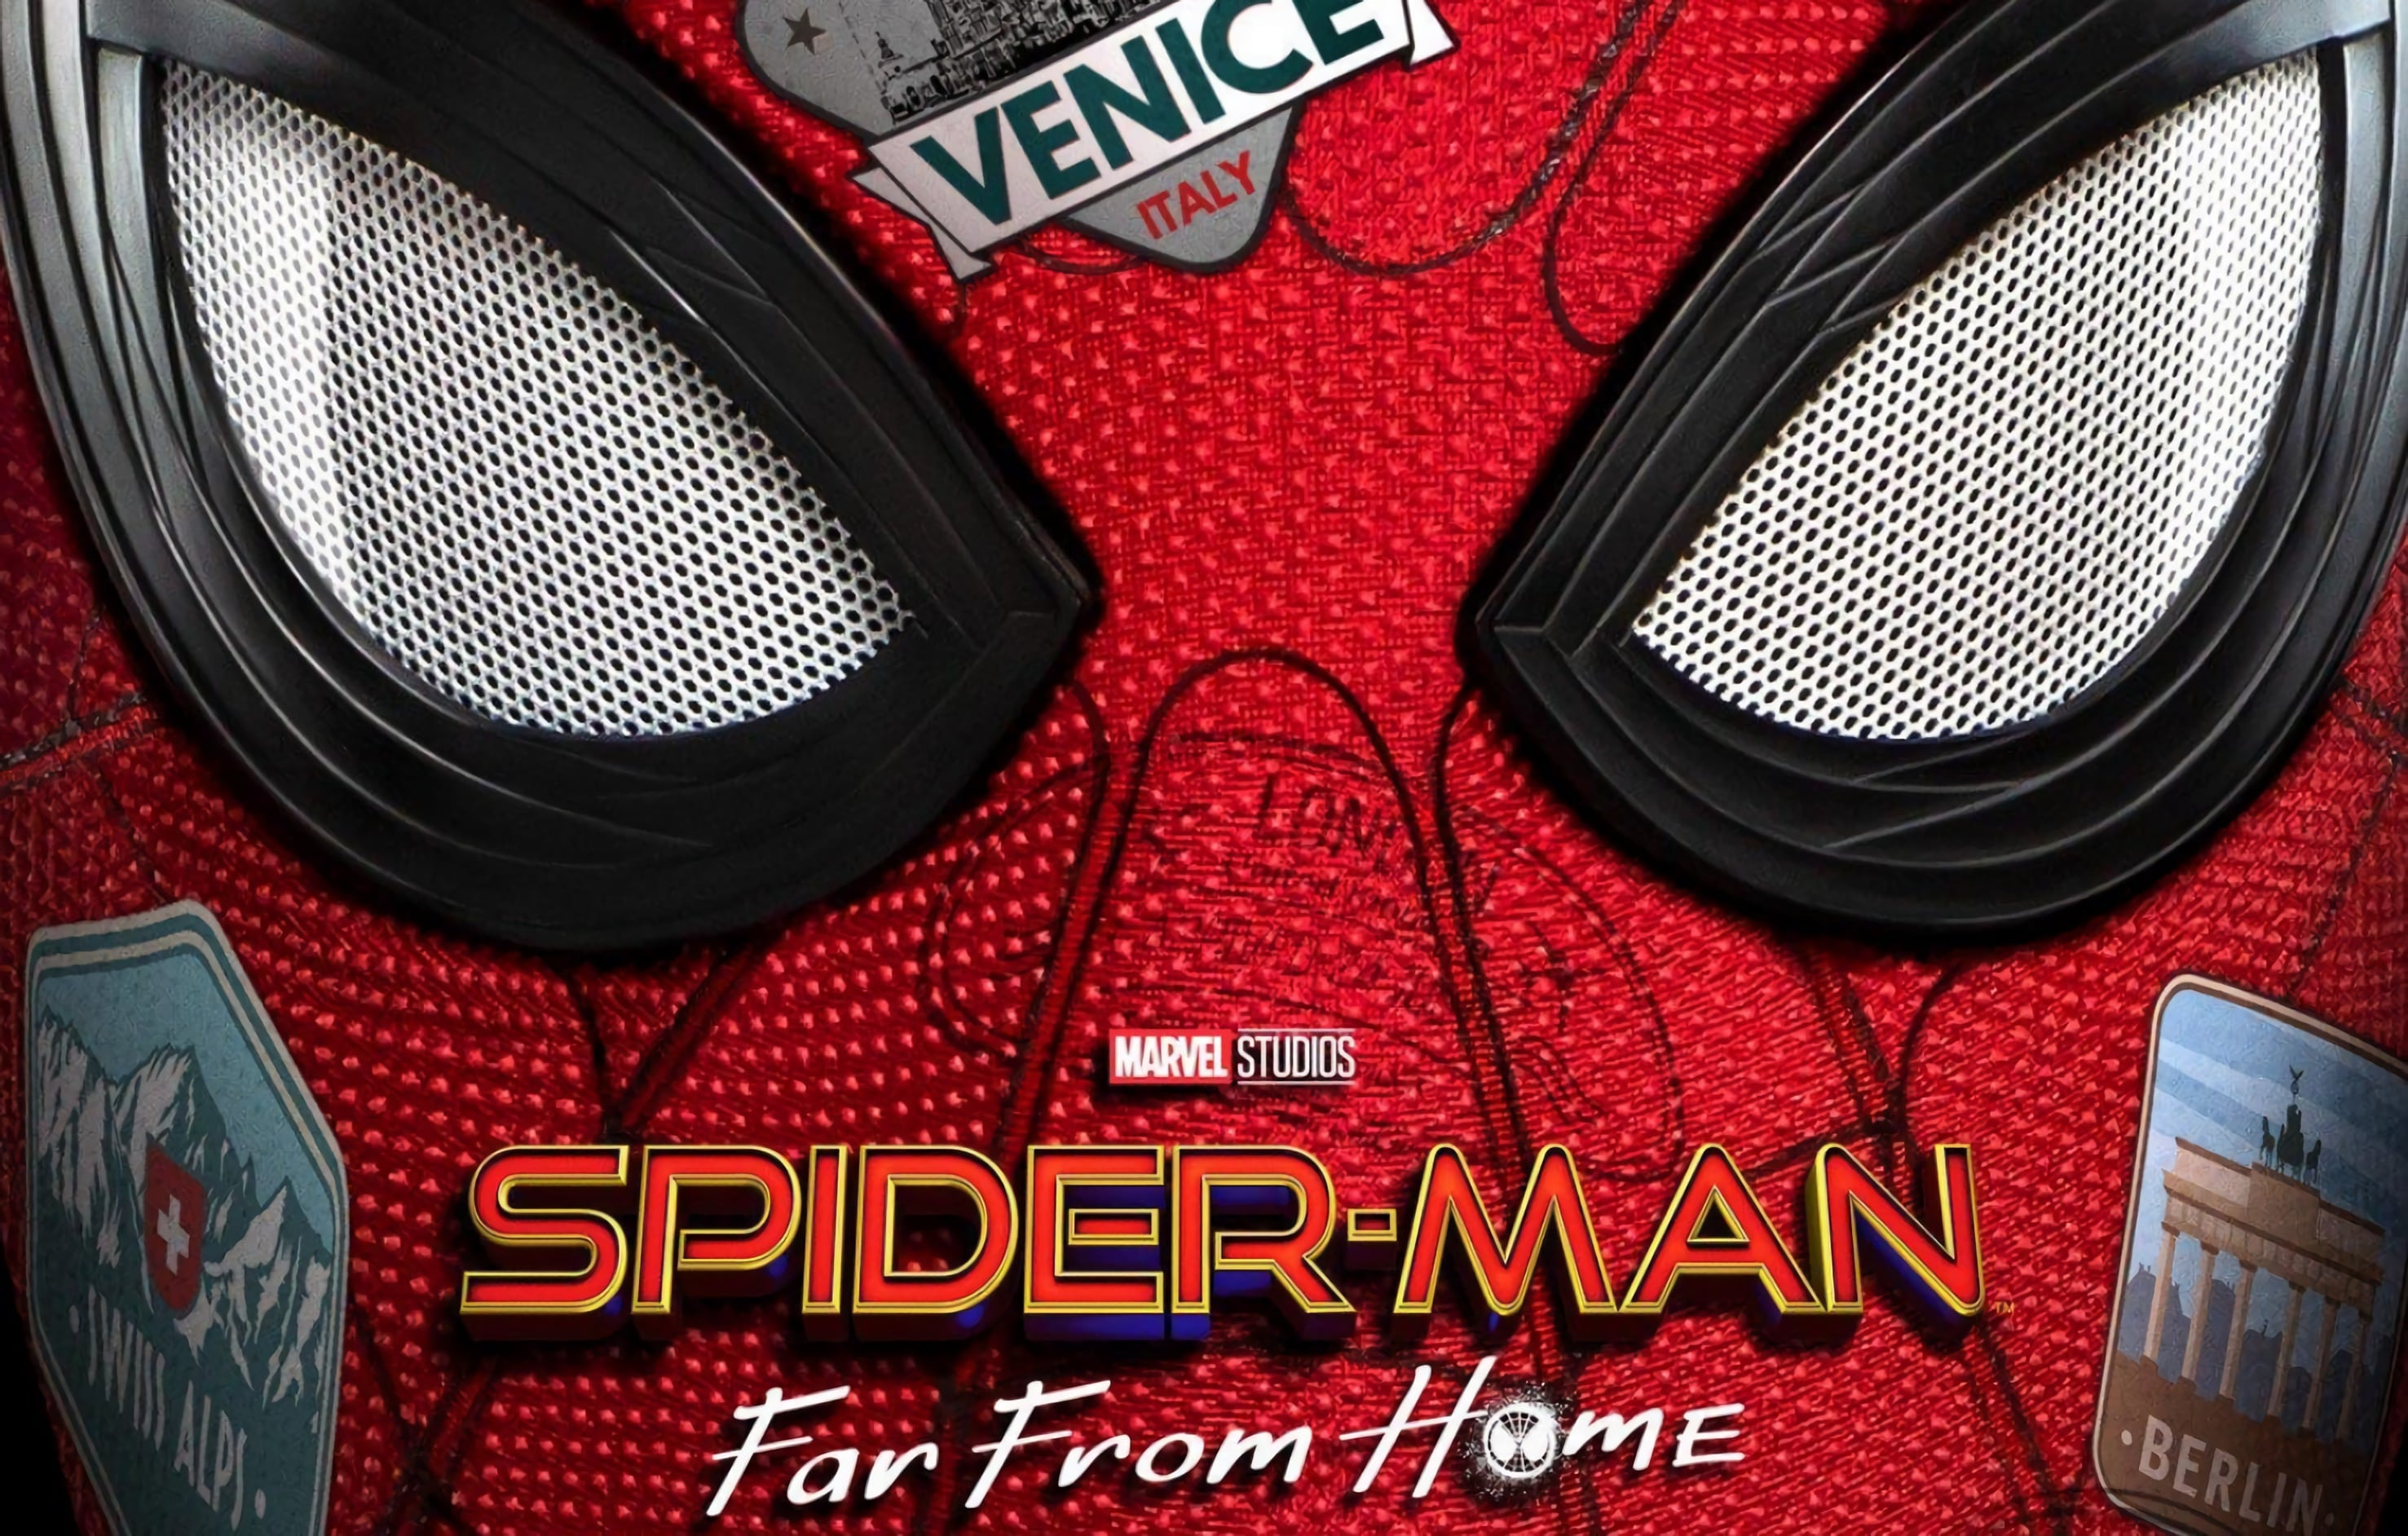 Watch the Spider-Man: Far From Home trailer, and get a look at the poster, and a screenshot.